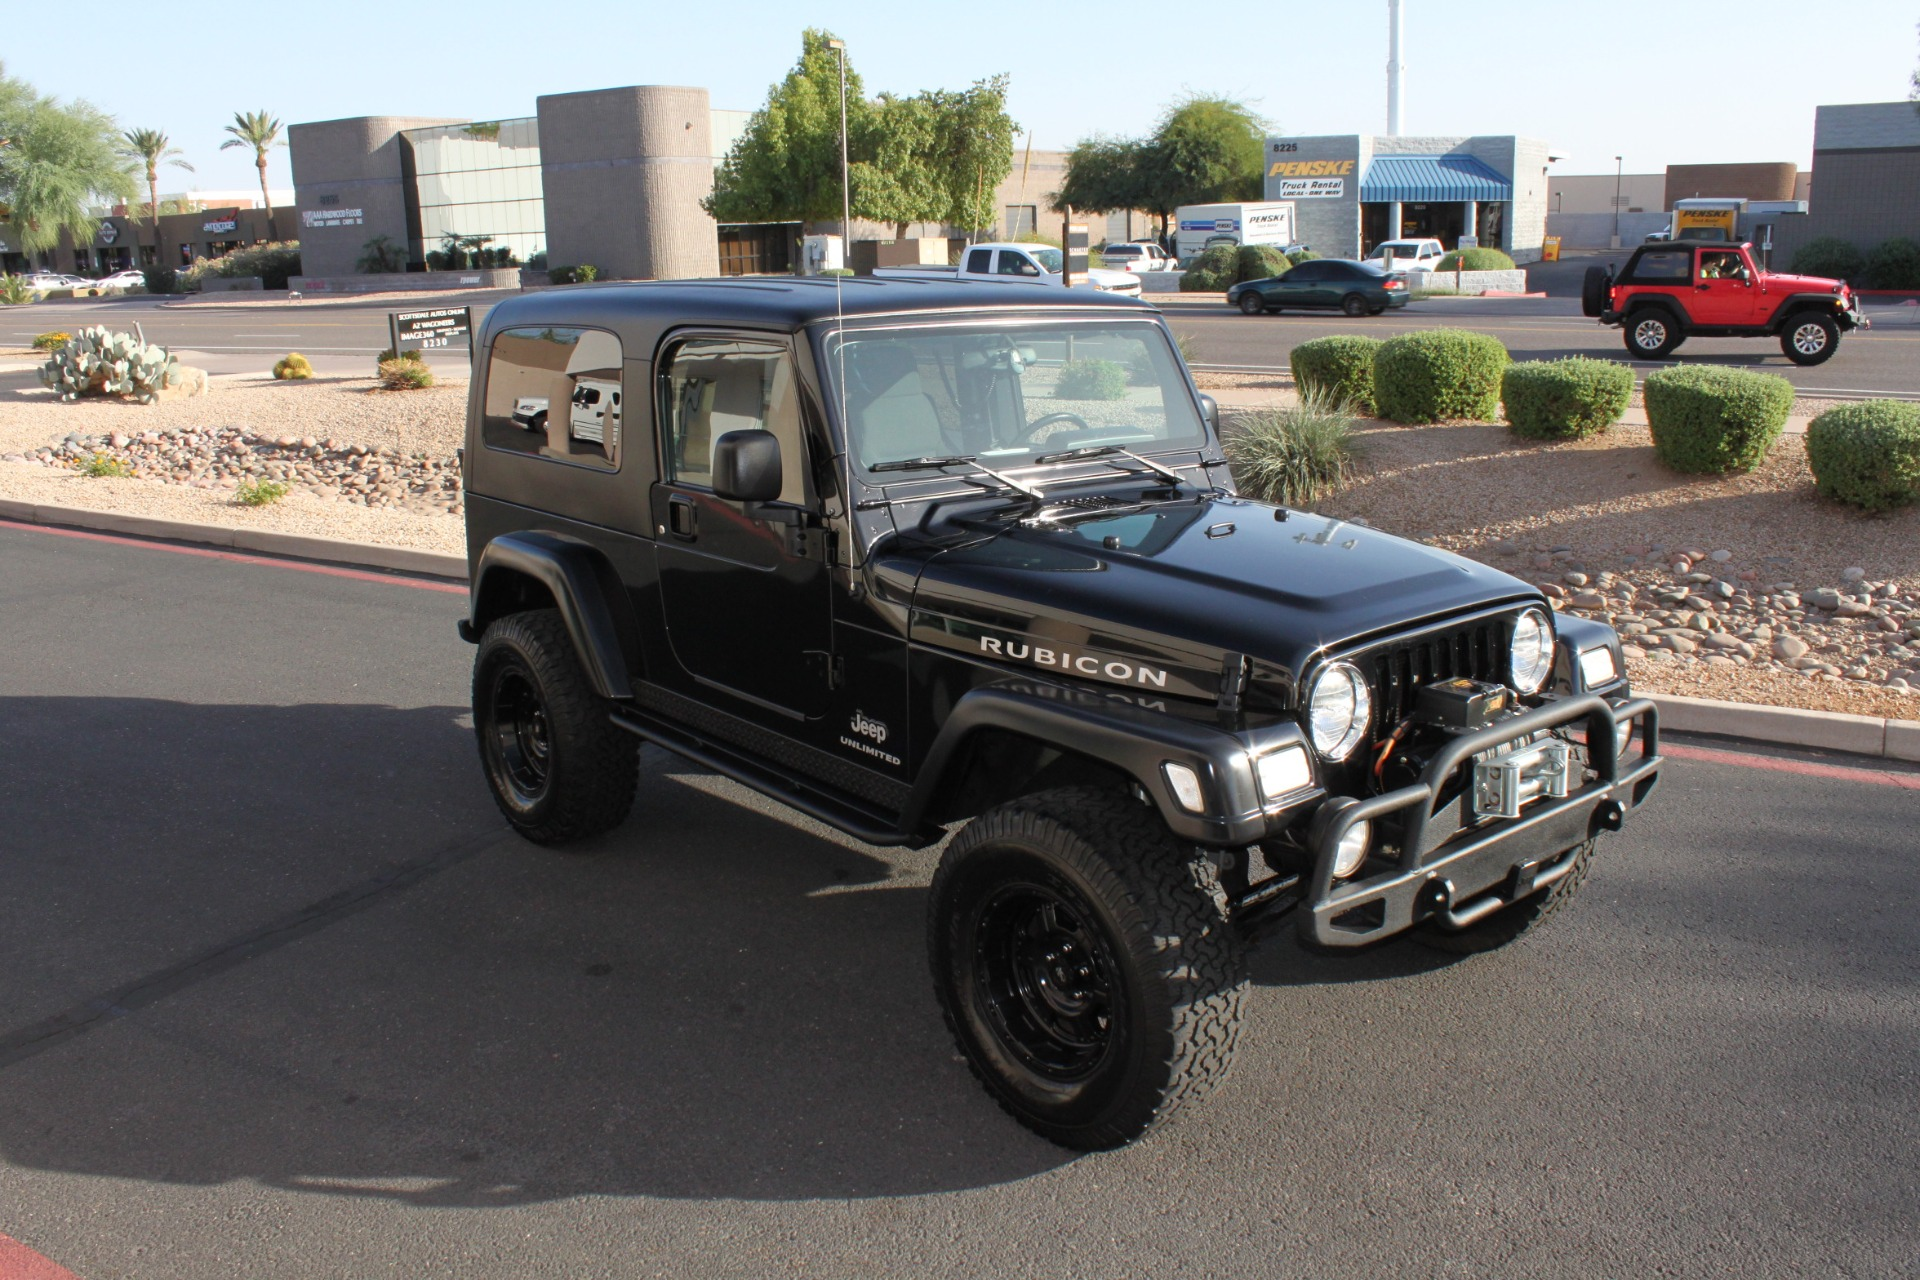 Used-2006-Jeep-Wrangler-Unlimited-Rubicon-LWB-Chalenger